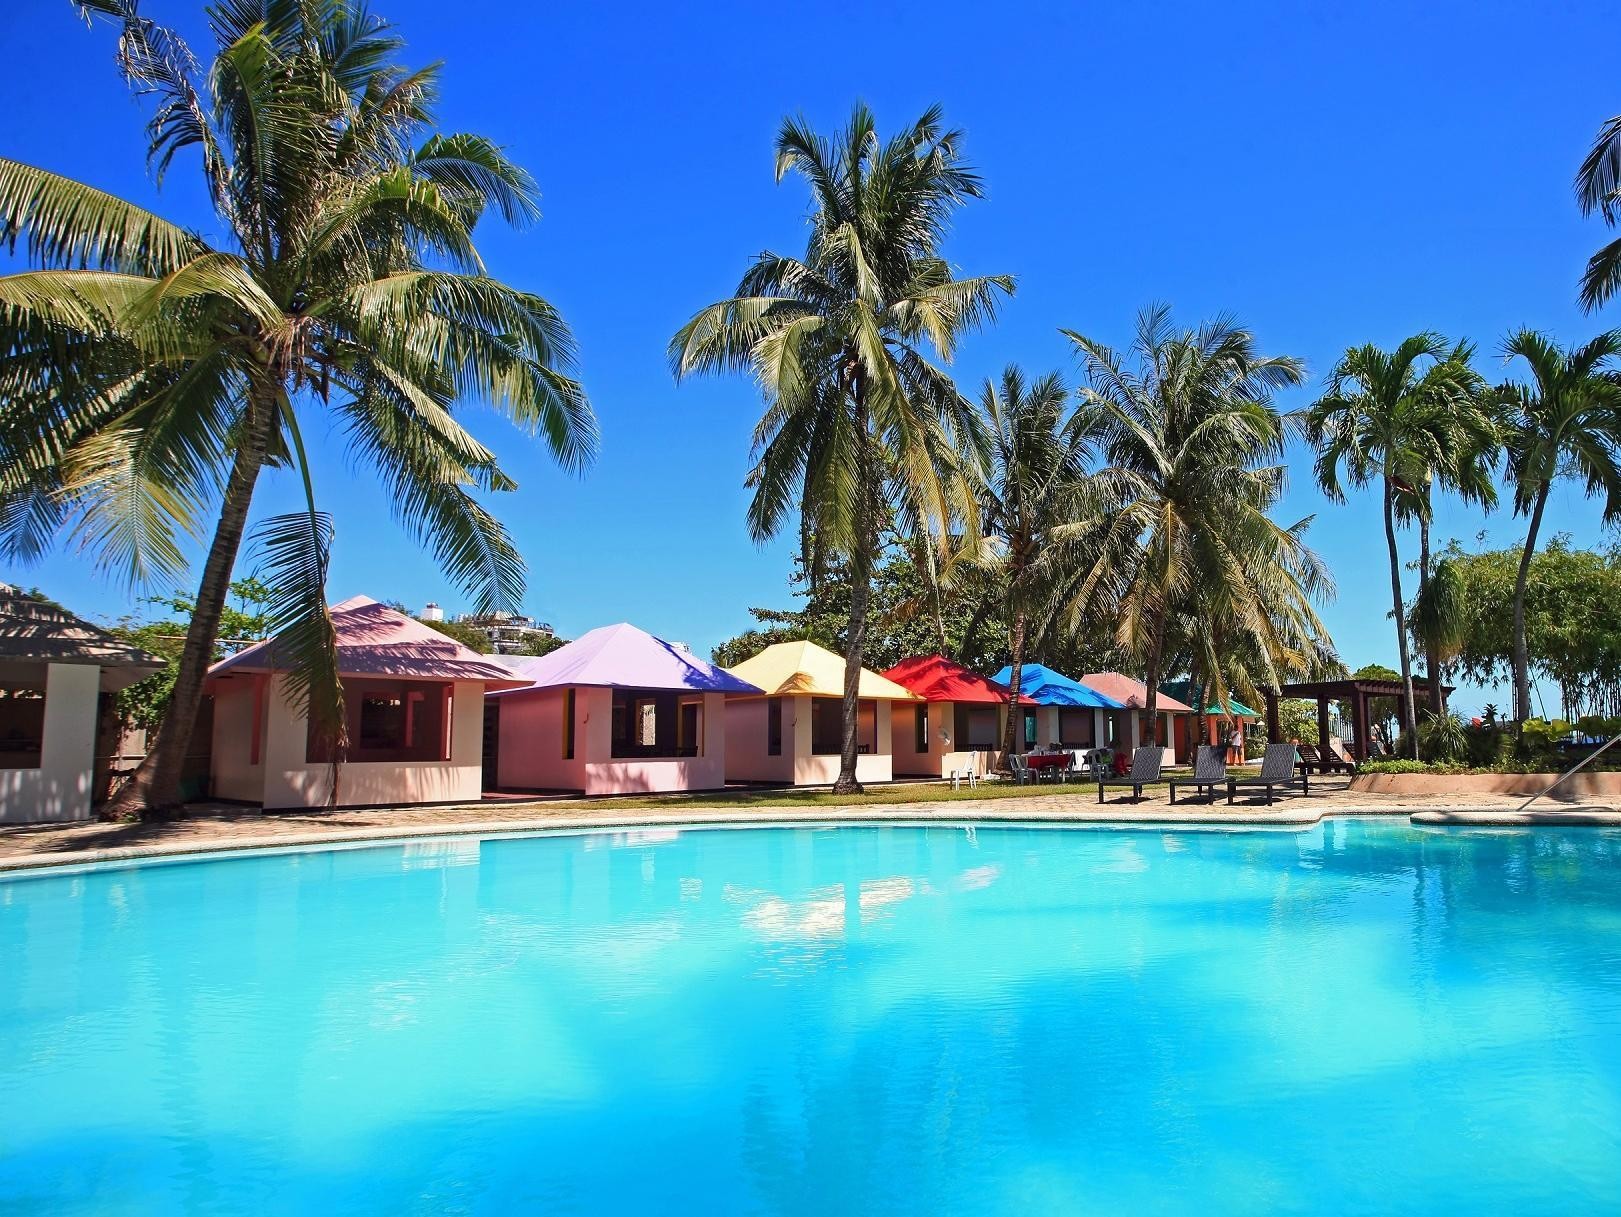 EGI Resort and Hotel Cebu